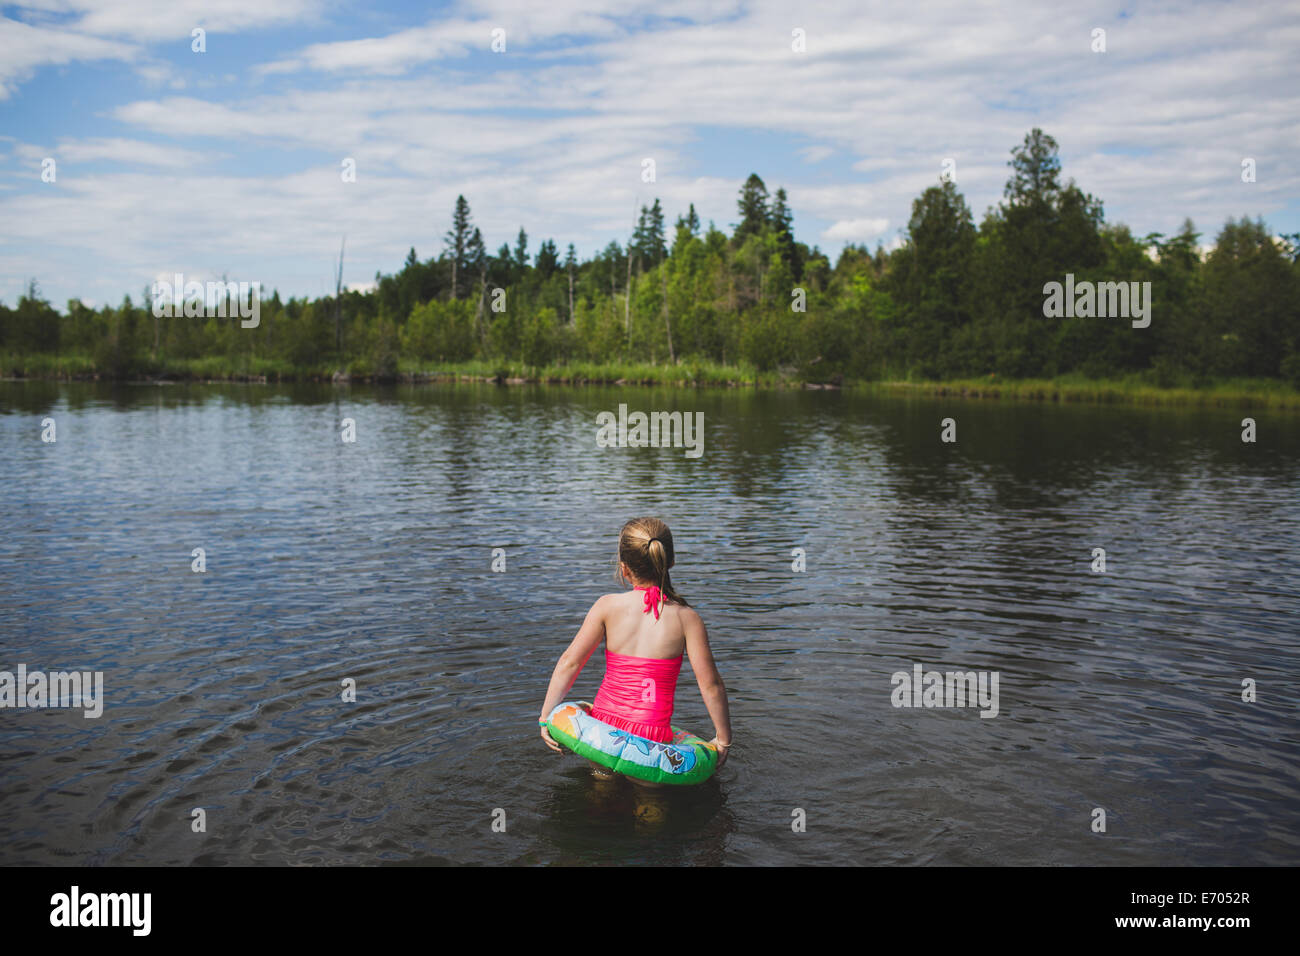 Rear view of girl with rubber ring in Indian river, Ontario, Canada - Stock Image